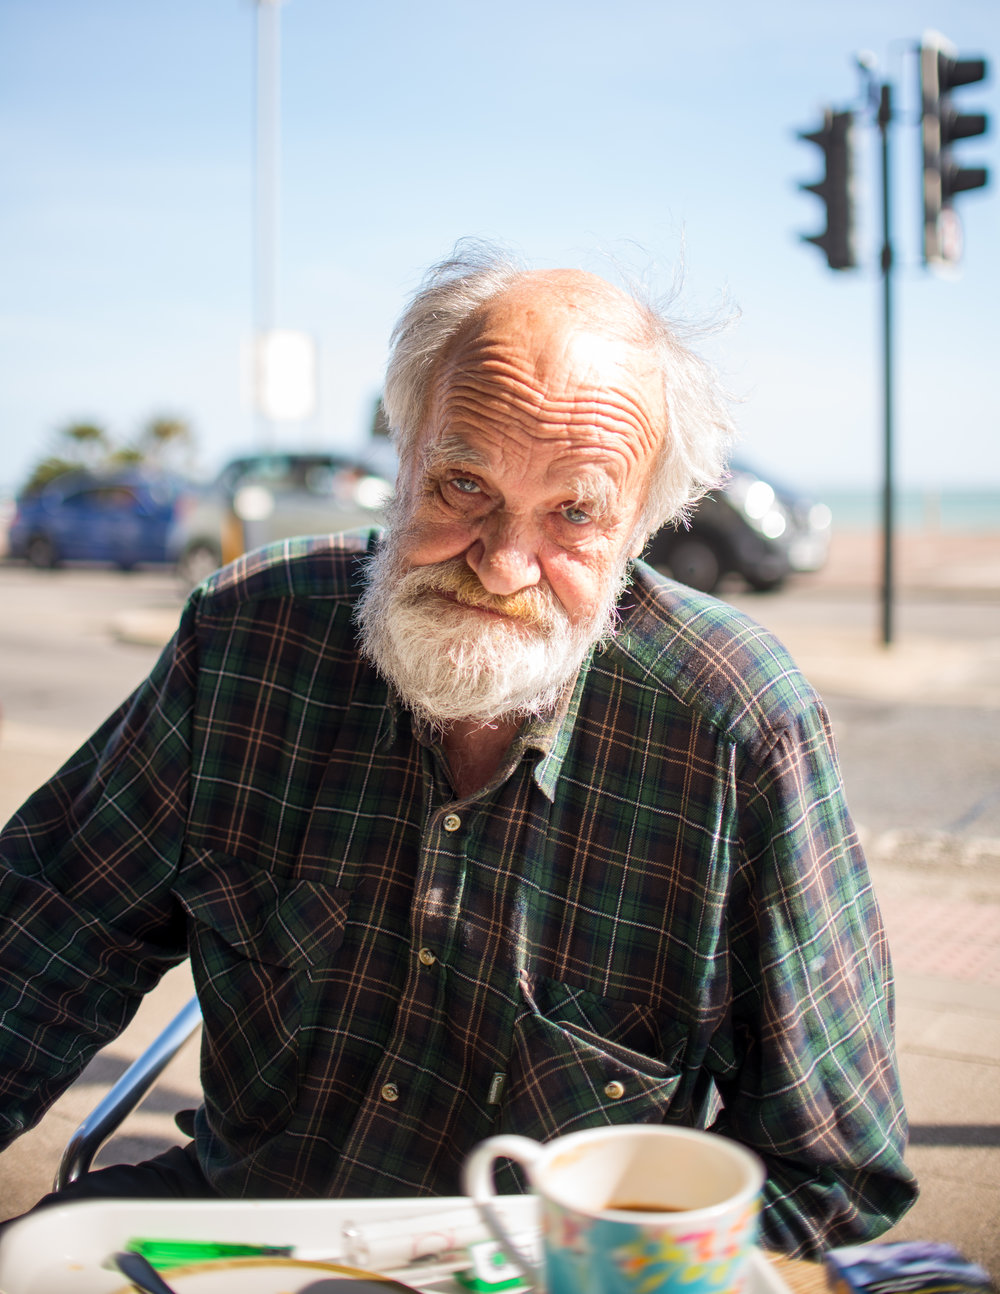 Hastings Portraits: John, outside Kassa Cafe